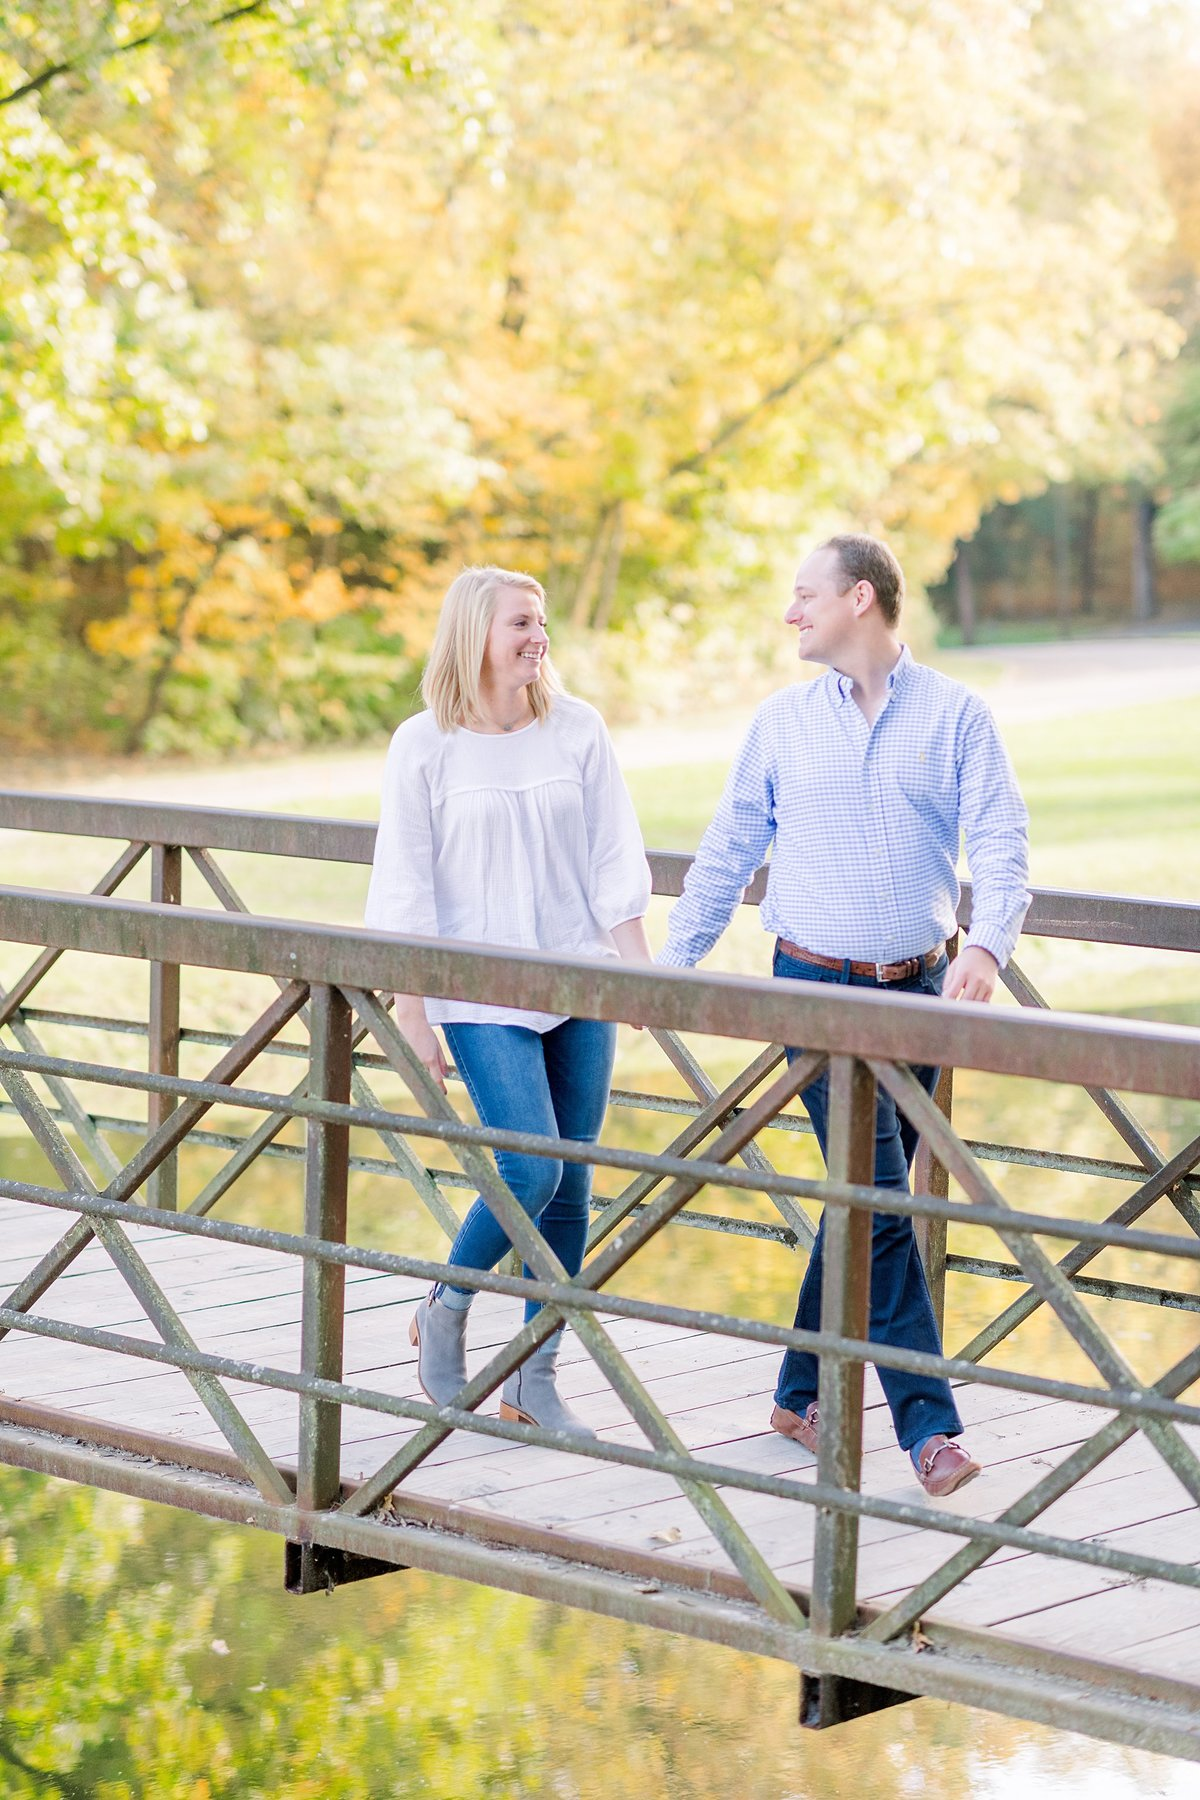 Holcomb Gardens Engagement Session Indianapolis, Indiana Wedding Photographer Alison Mae Photography_3182